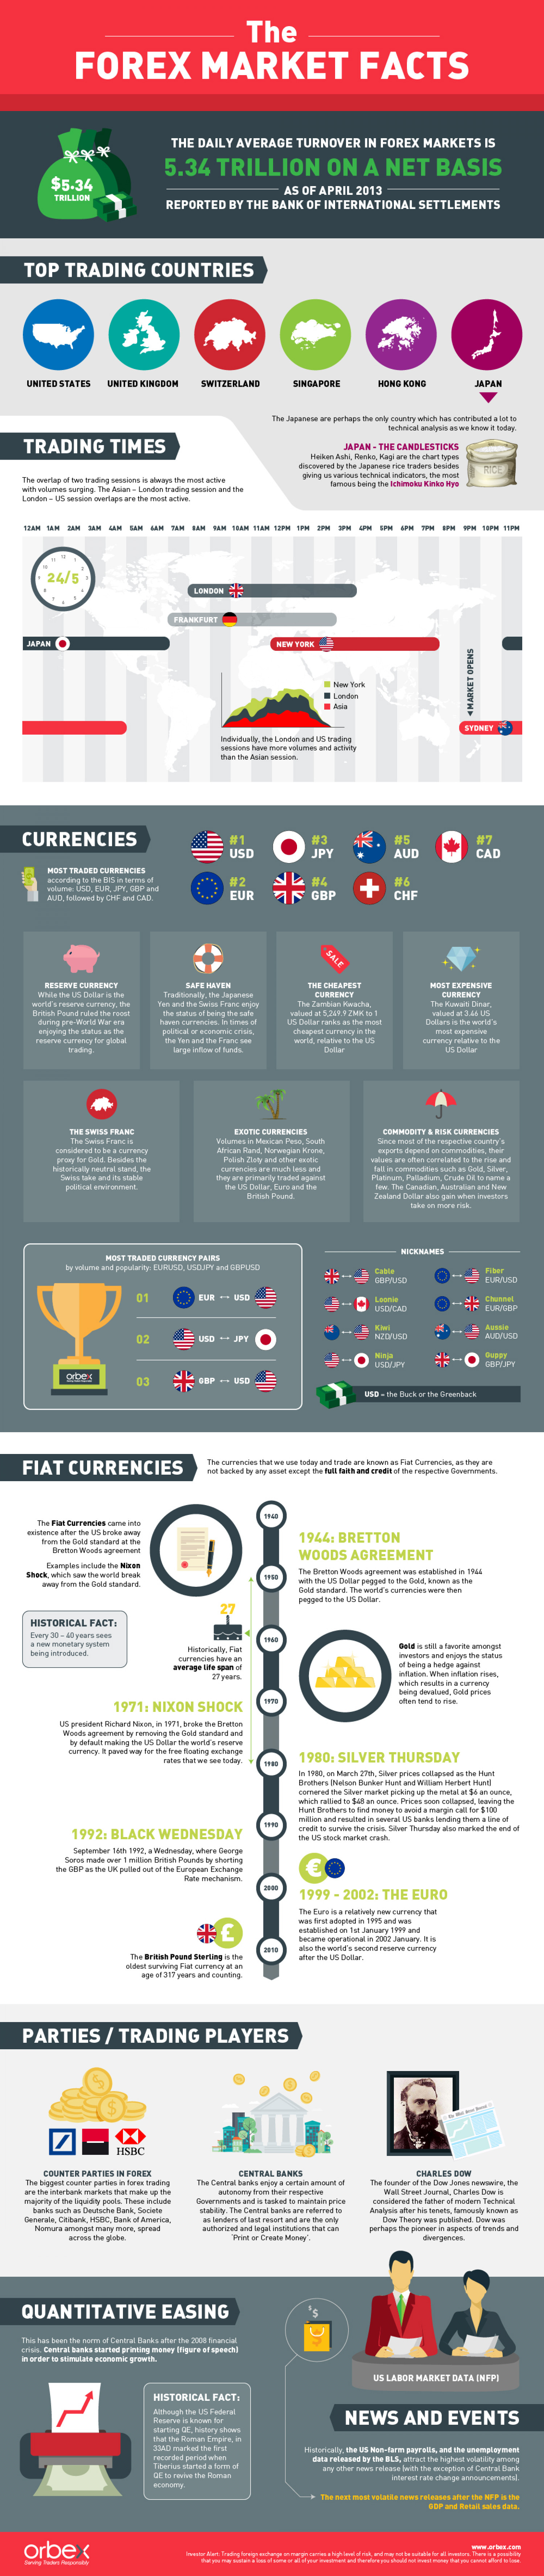 Forex fun facts